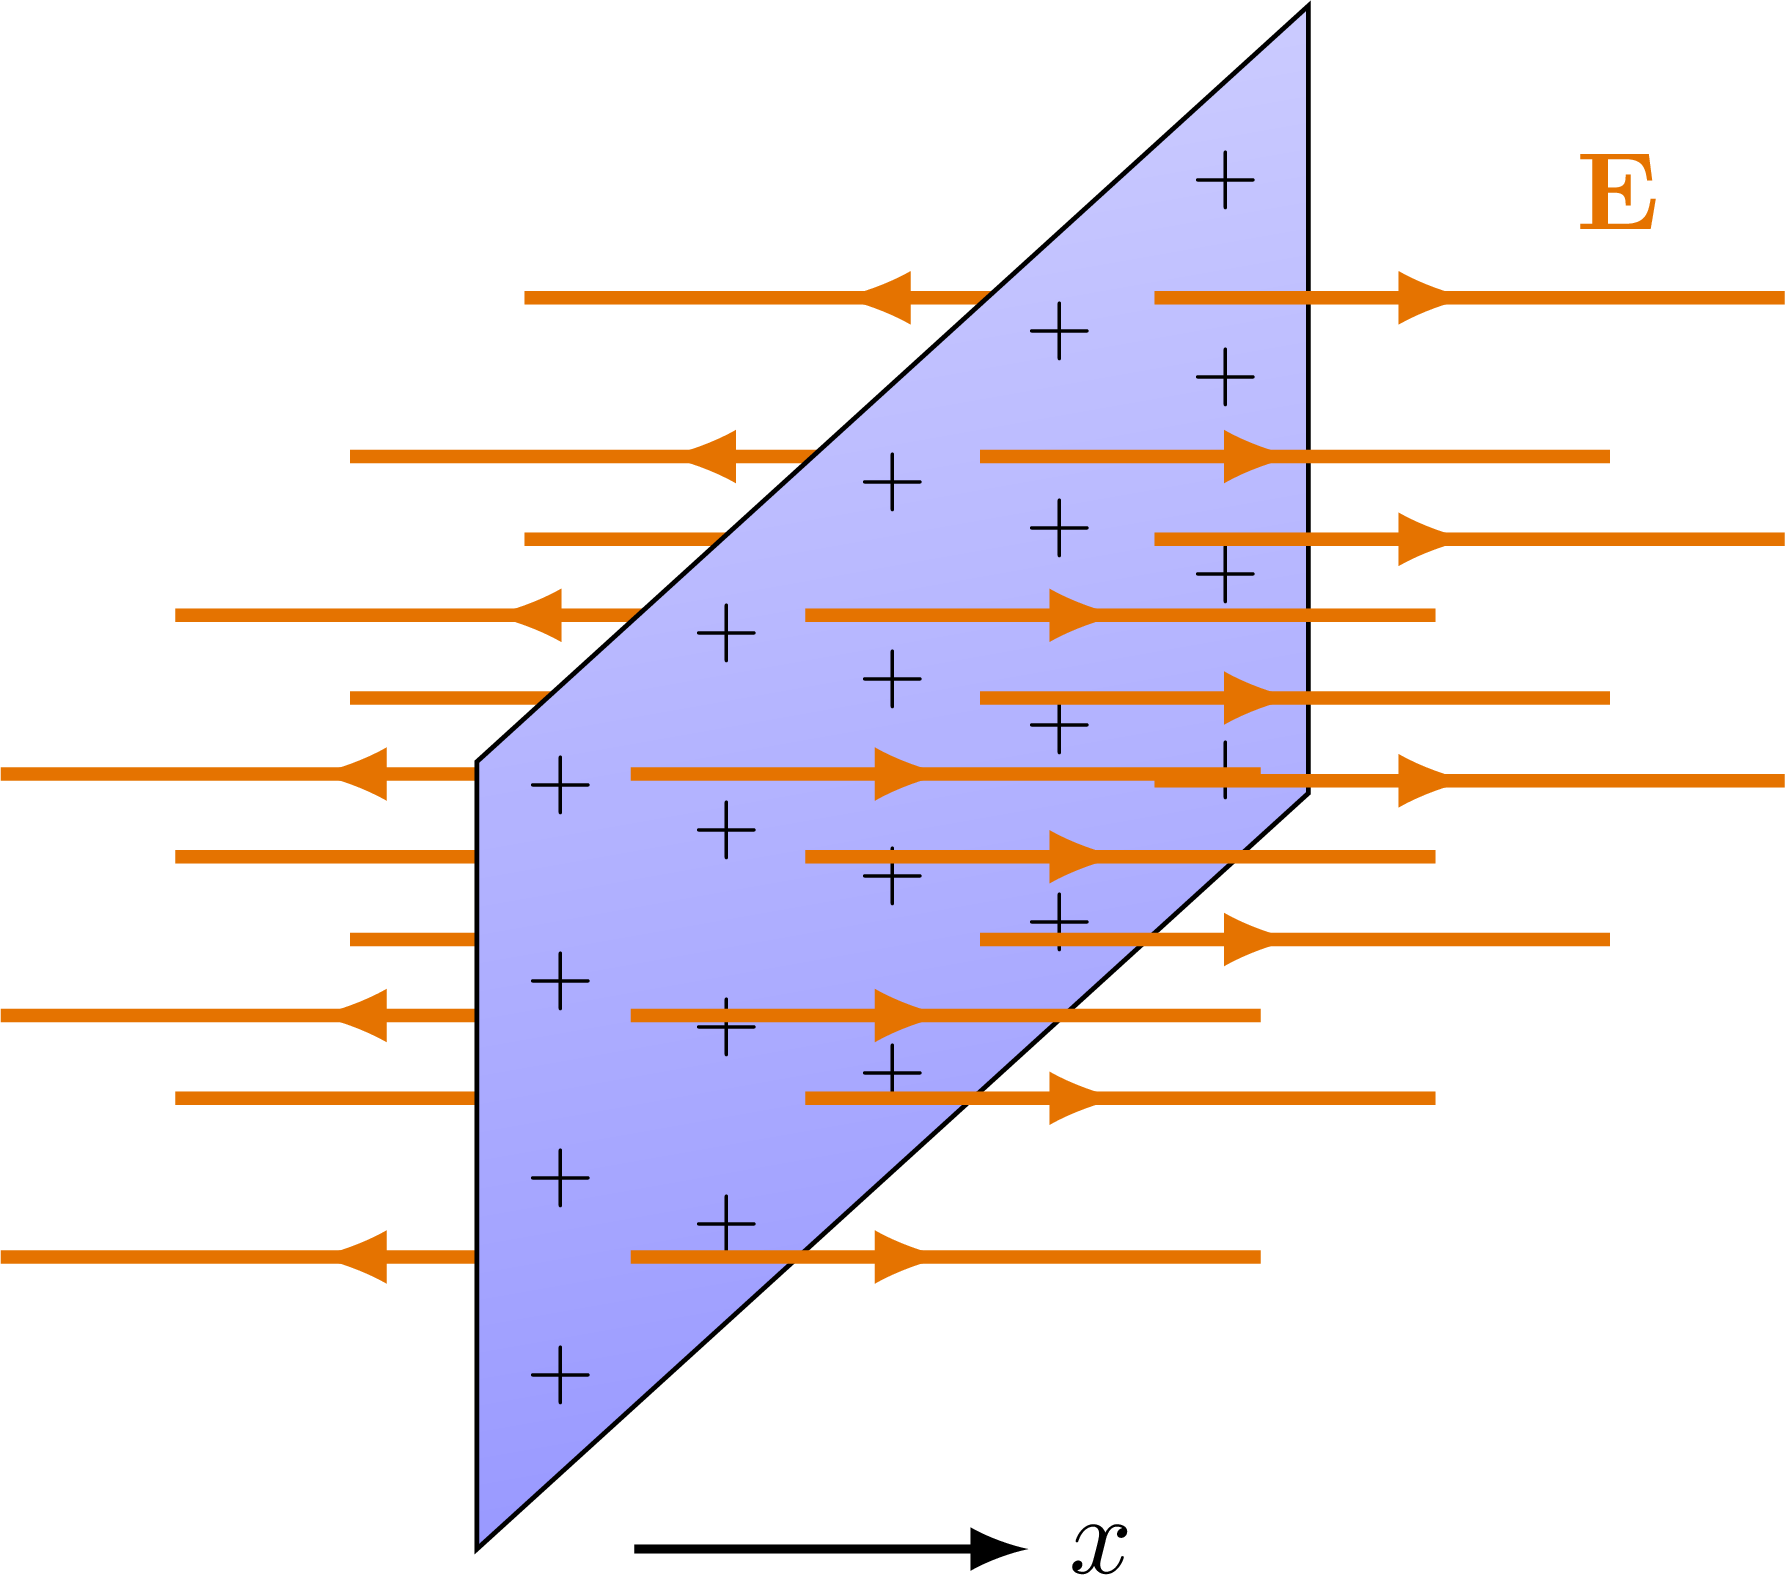 electric_field_plane-004.png